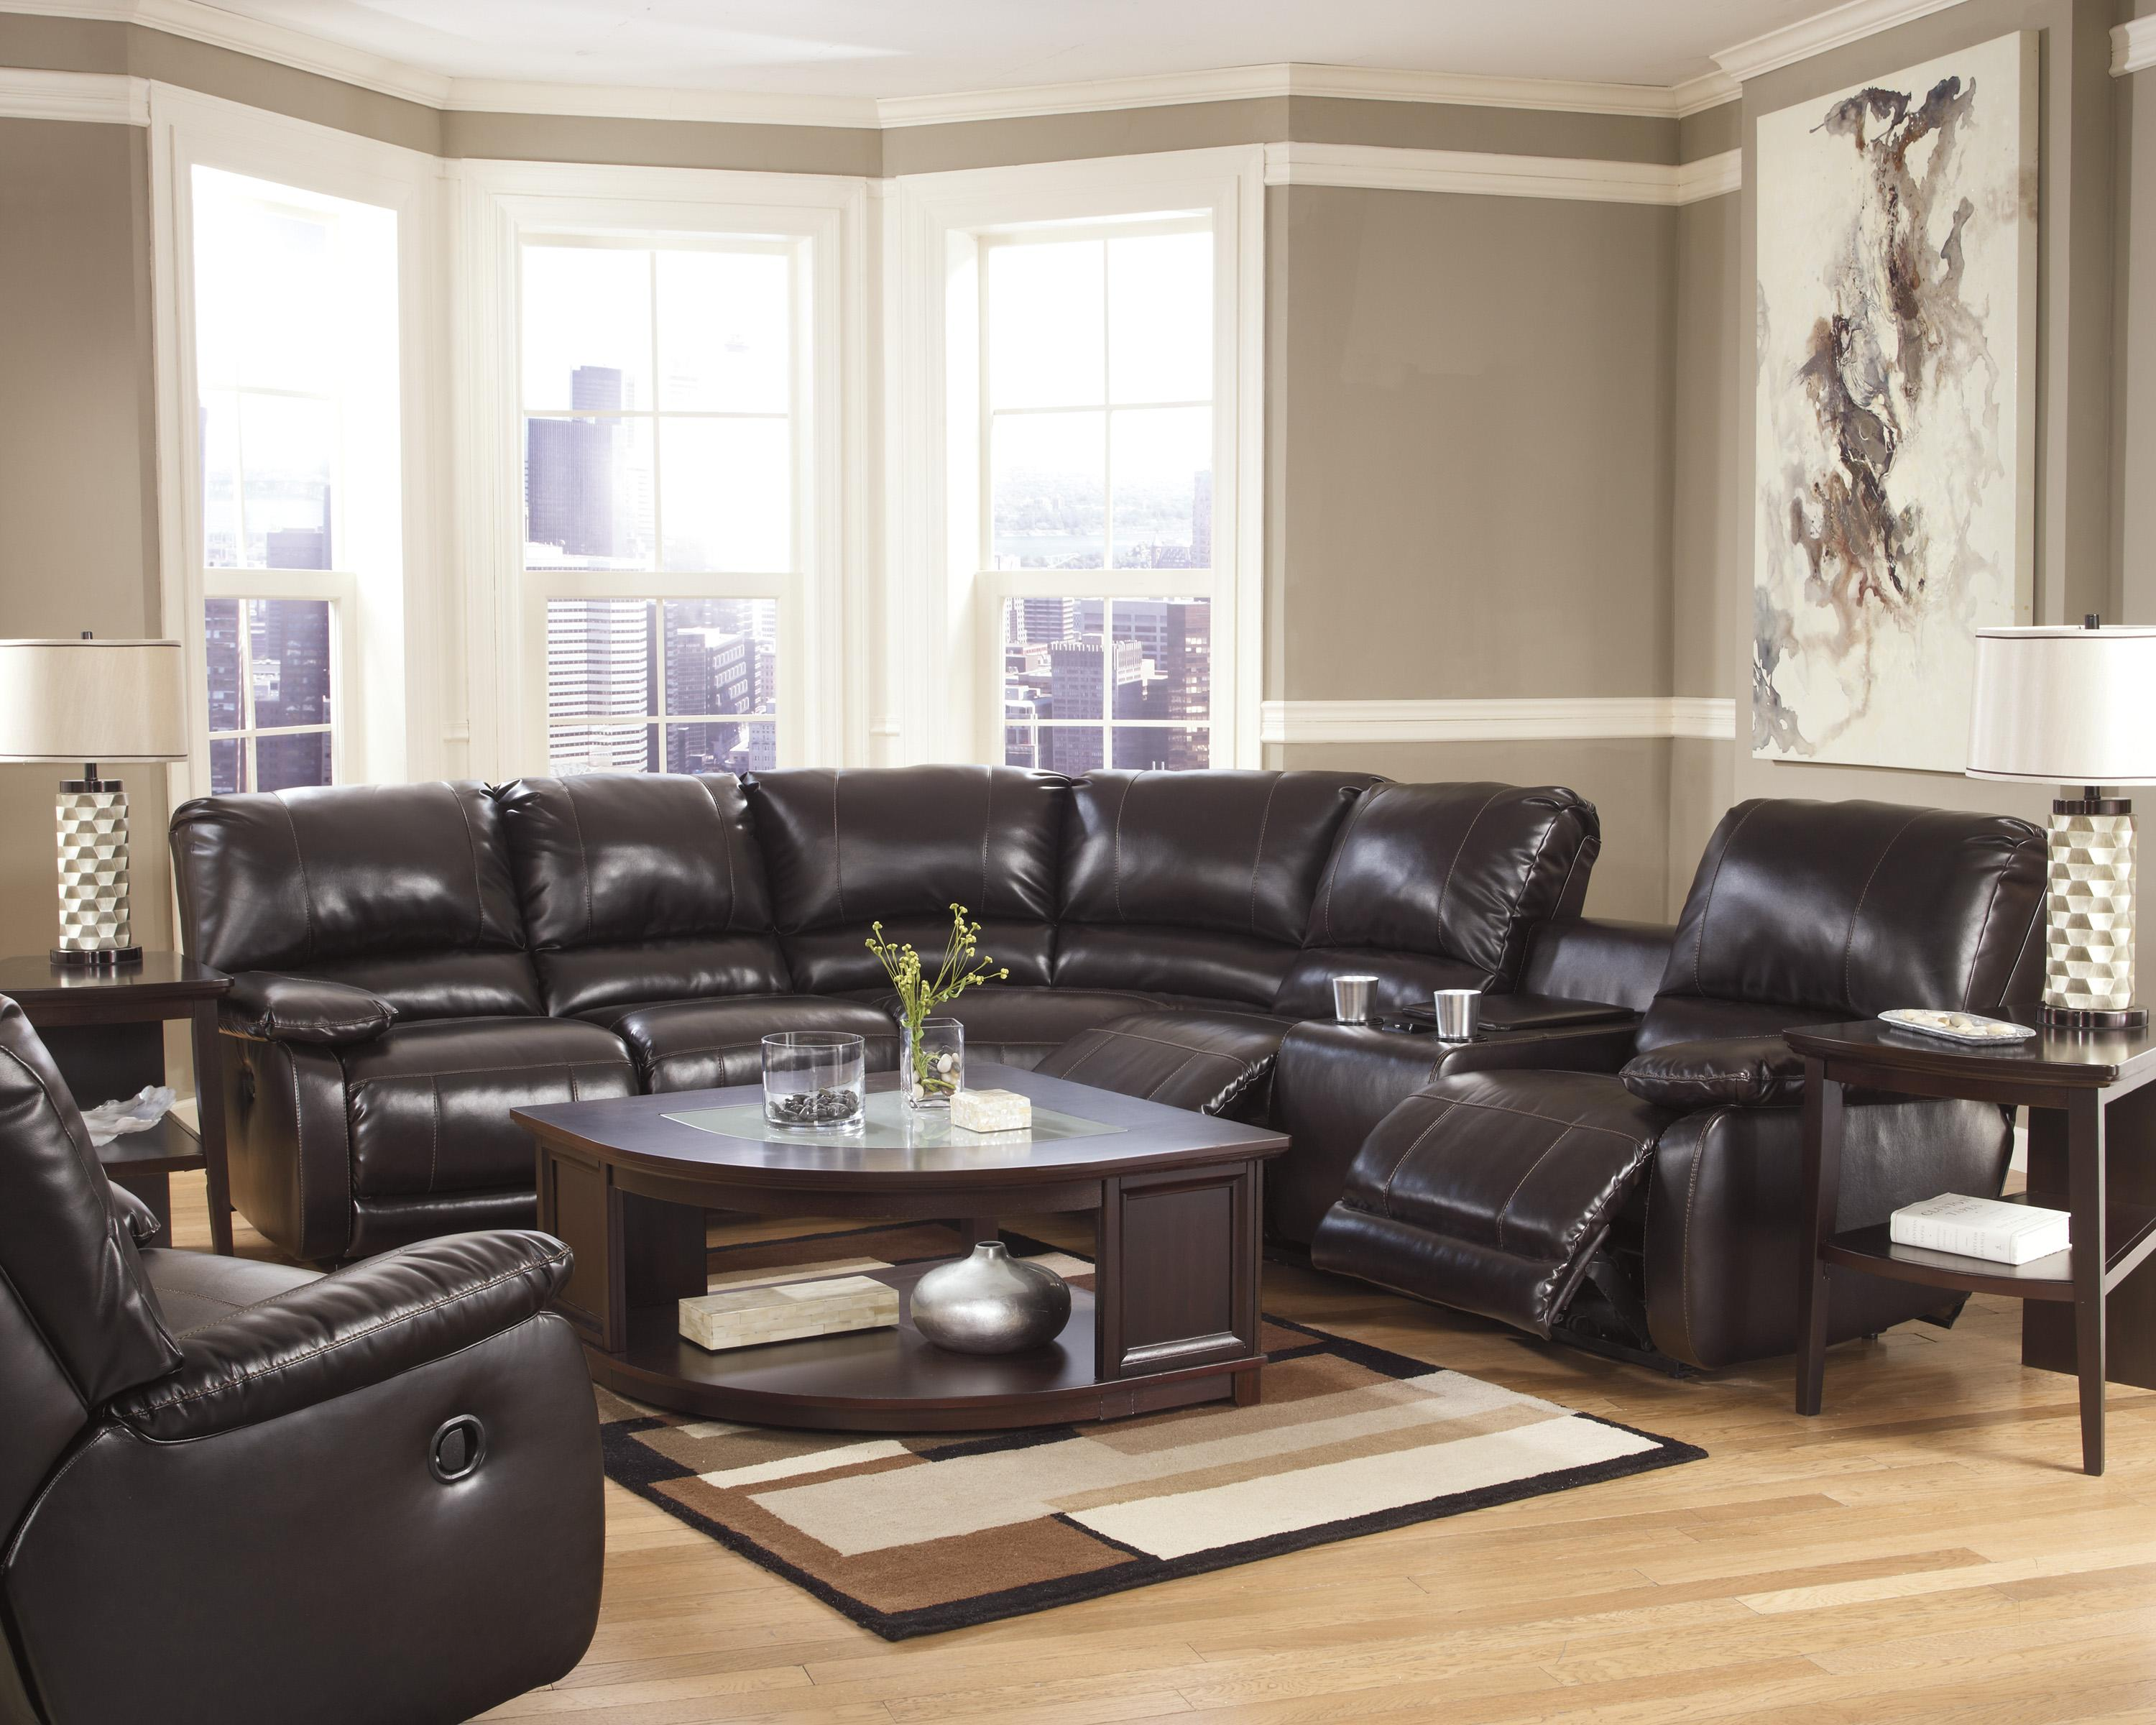 Signature Design by Ashley Capote DuraBlend® - Chocolate Reclining Living Room Group - Item Number: 44500 Living Room Group 1